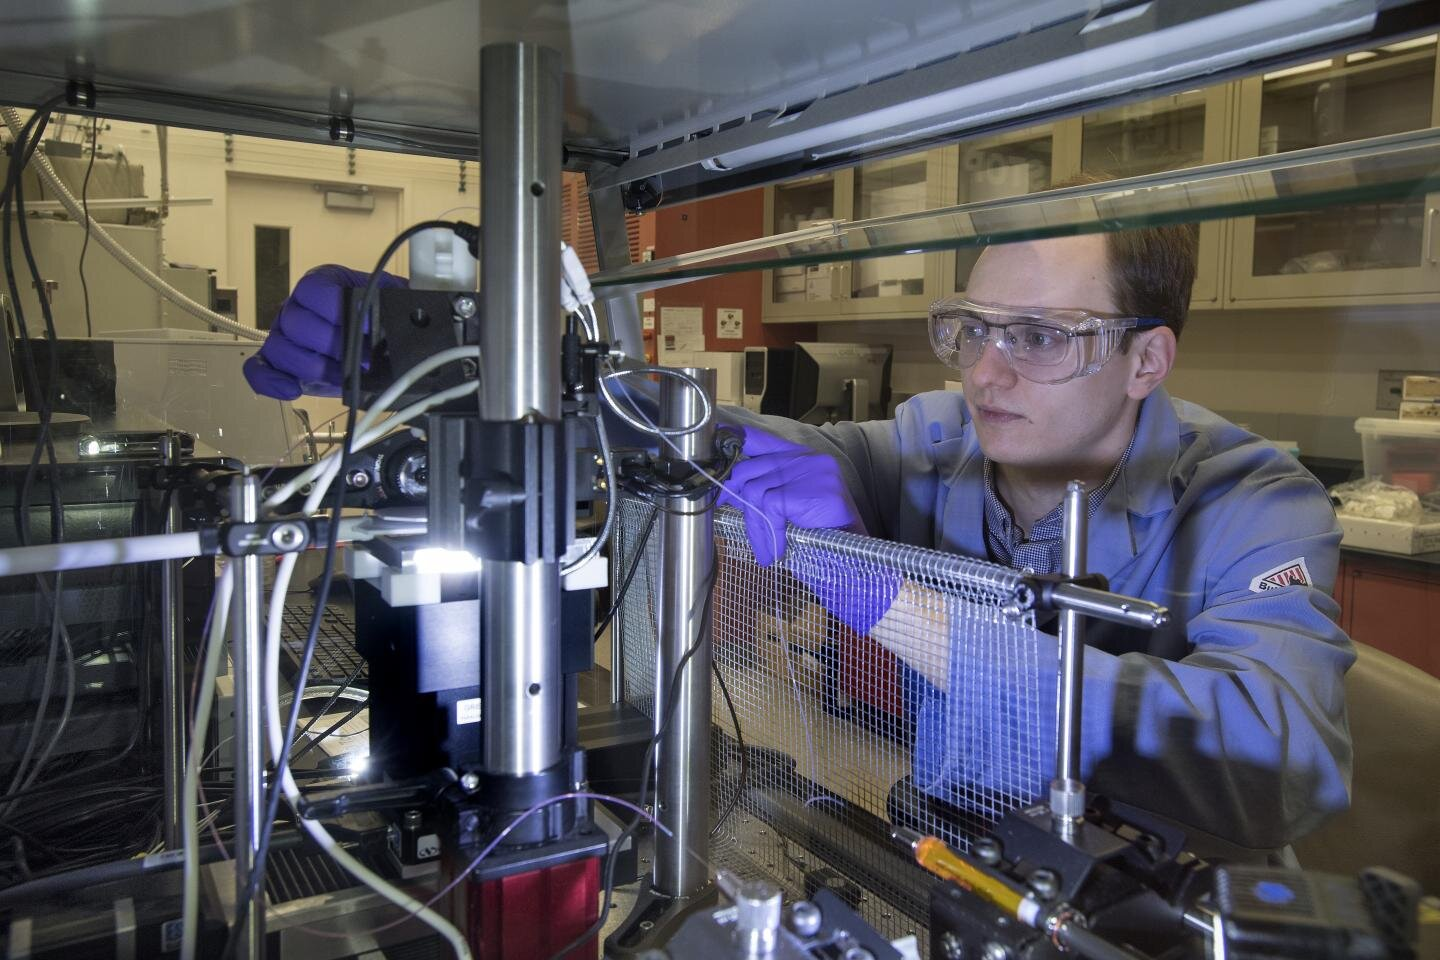 New platform for creating and characterizing material blends could significantly accelerate development